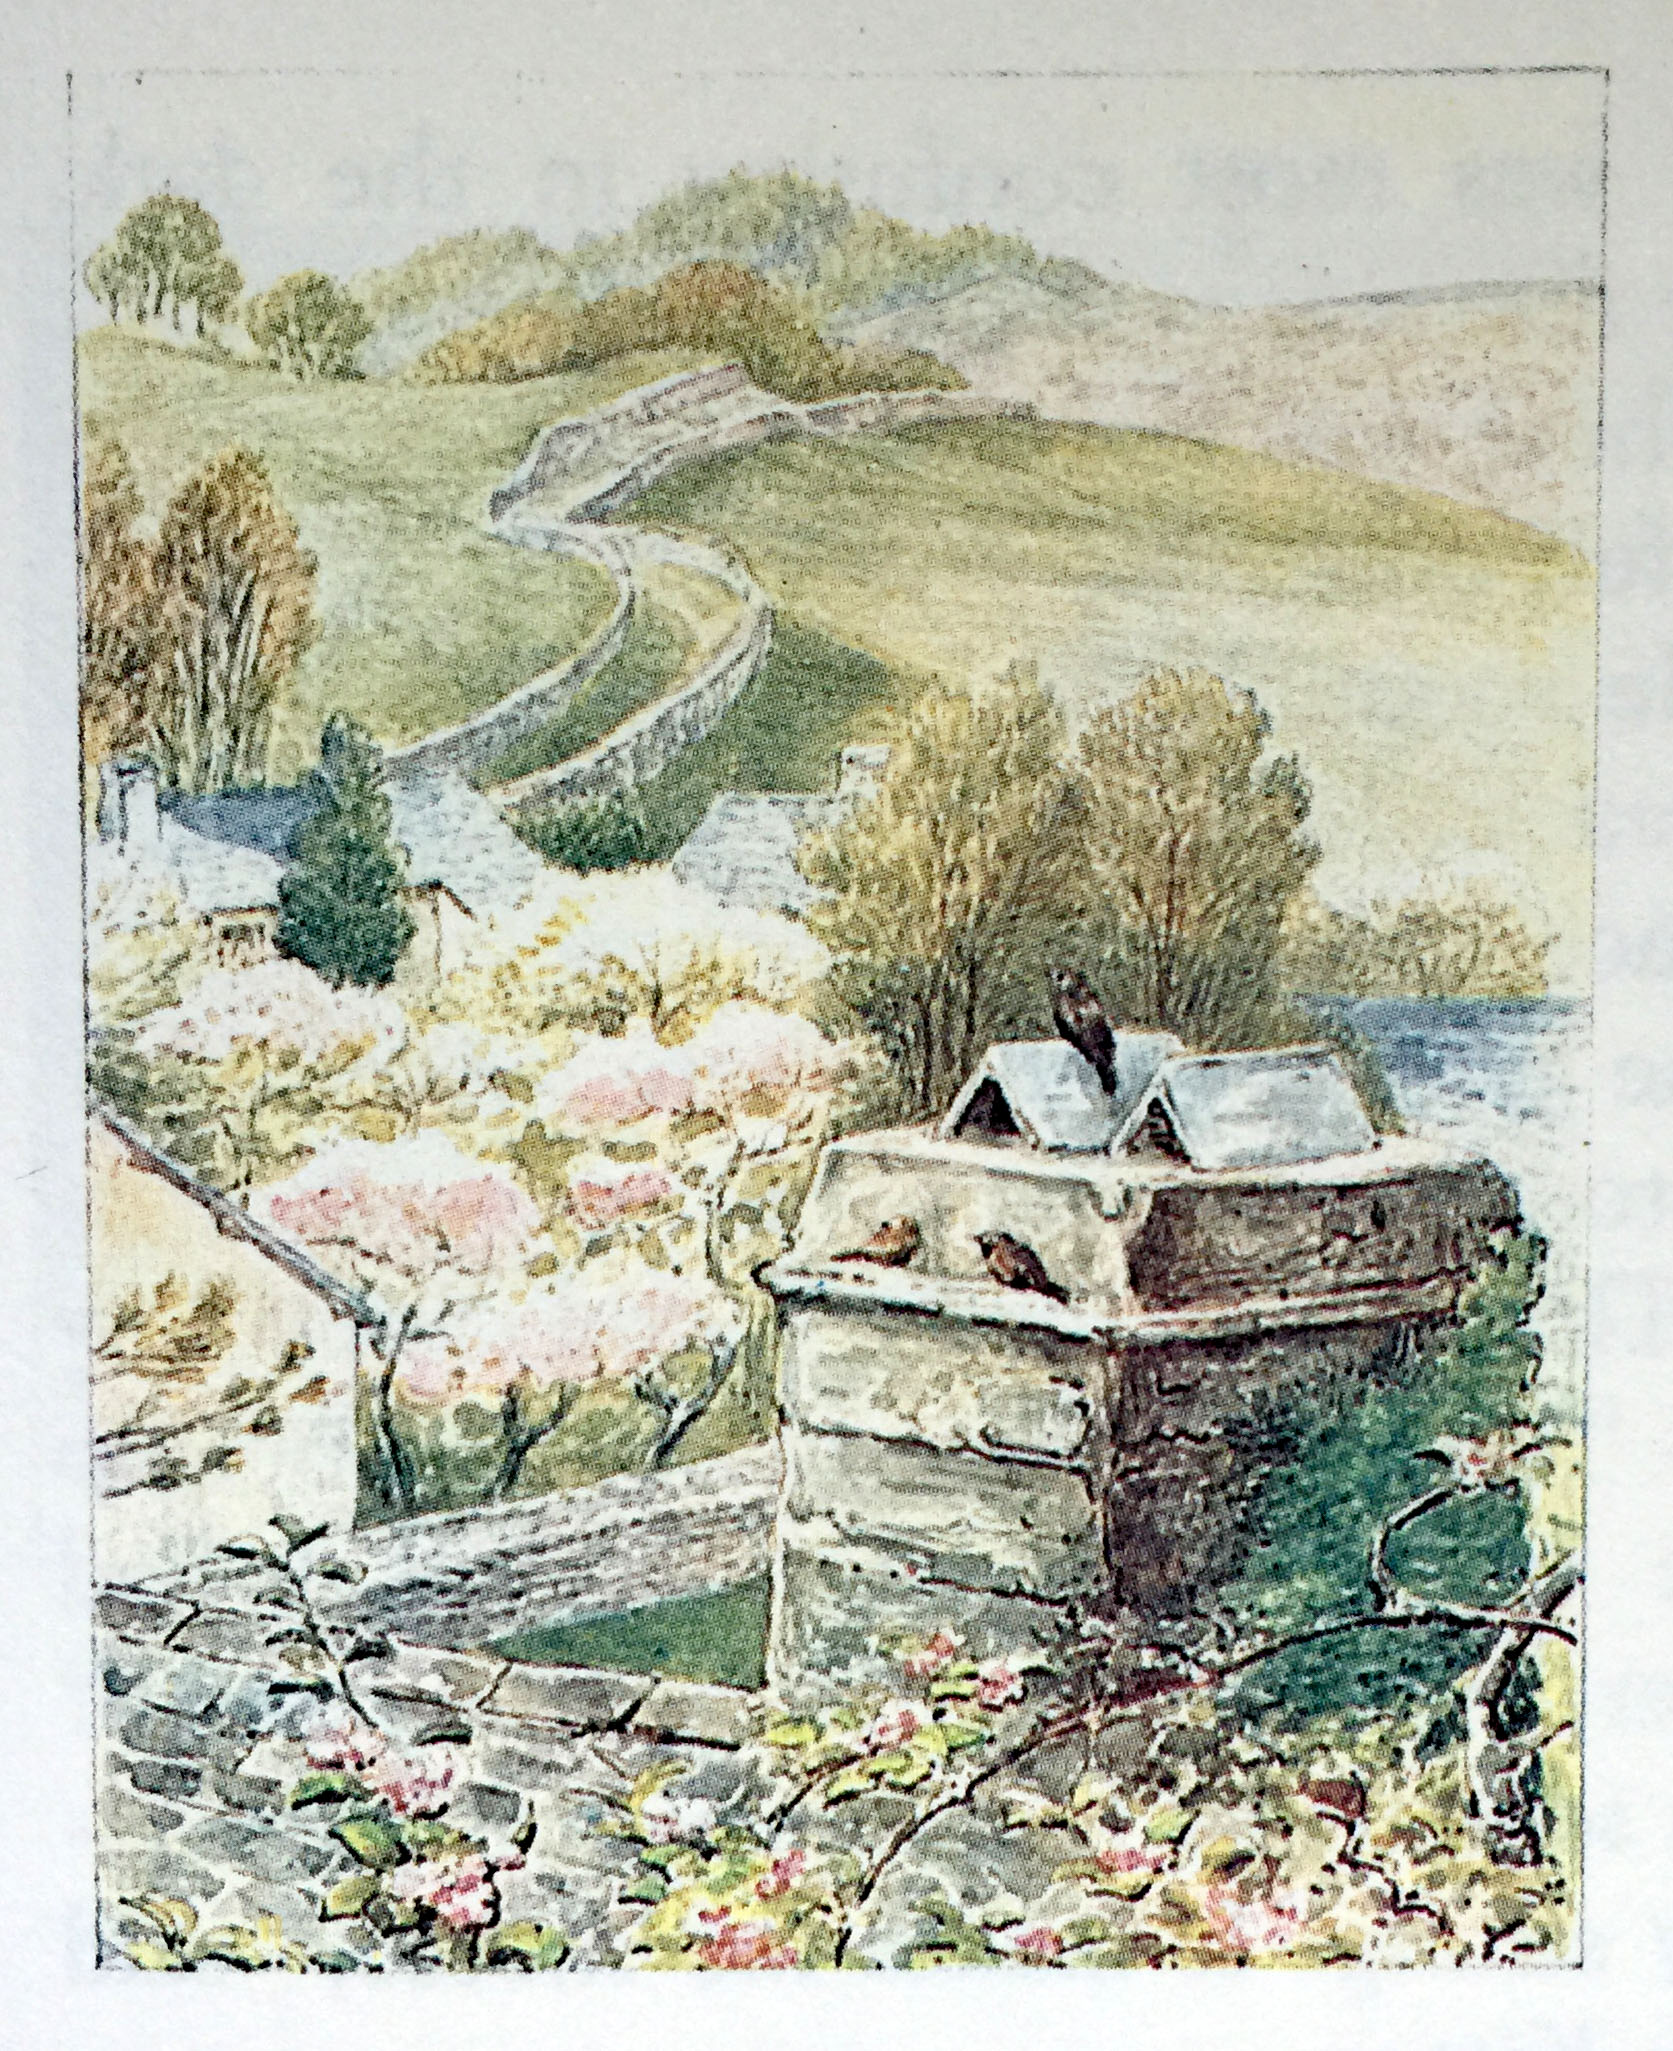 """""""Think of the maintenance of the outbuildings! Could I learn to prune the fruit trees myself, or would I need to hire a service?"""" My adult self now asks. """"The cable is buried, right? A dish would look so tacky against the stonework."""""""